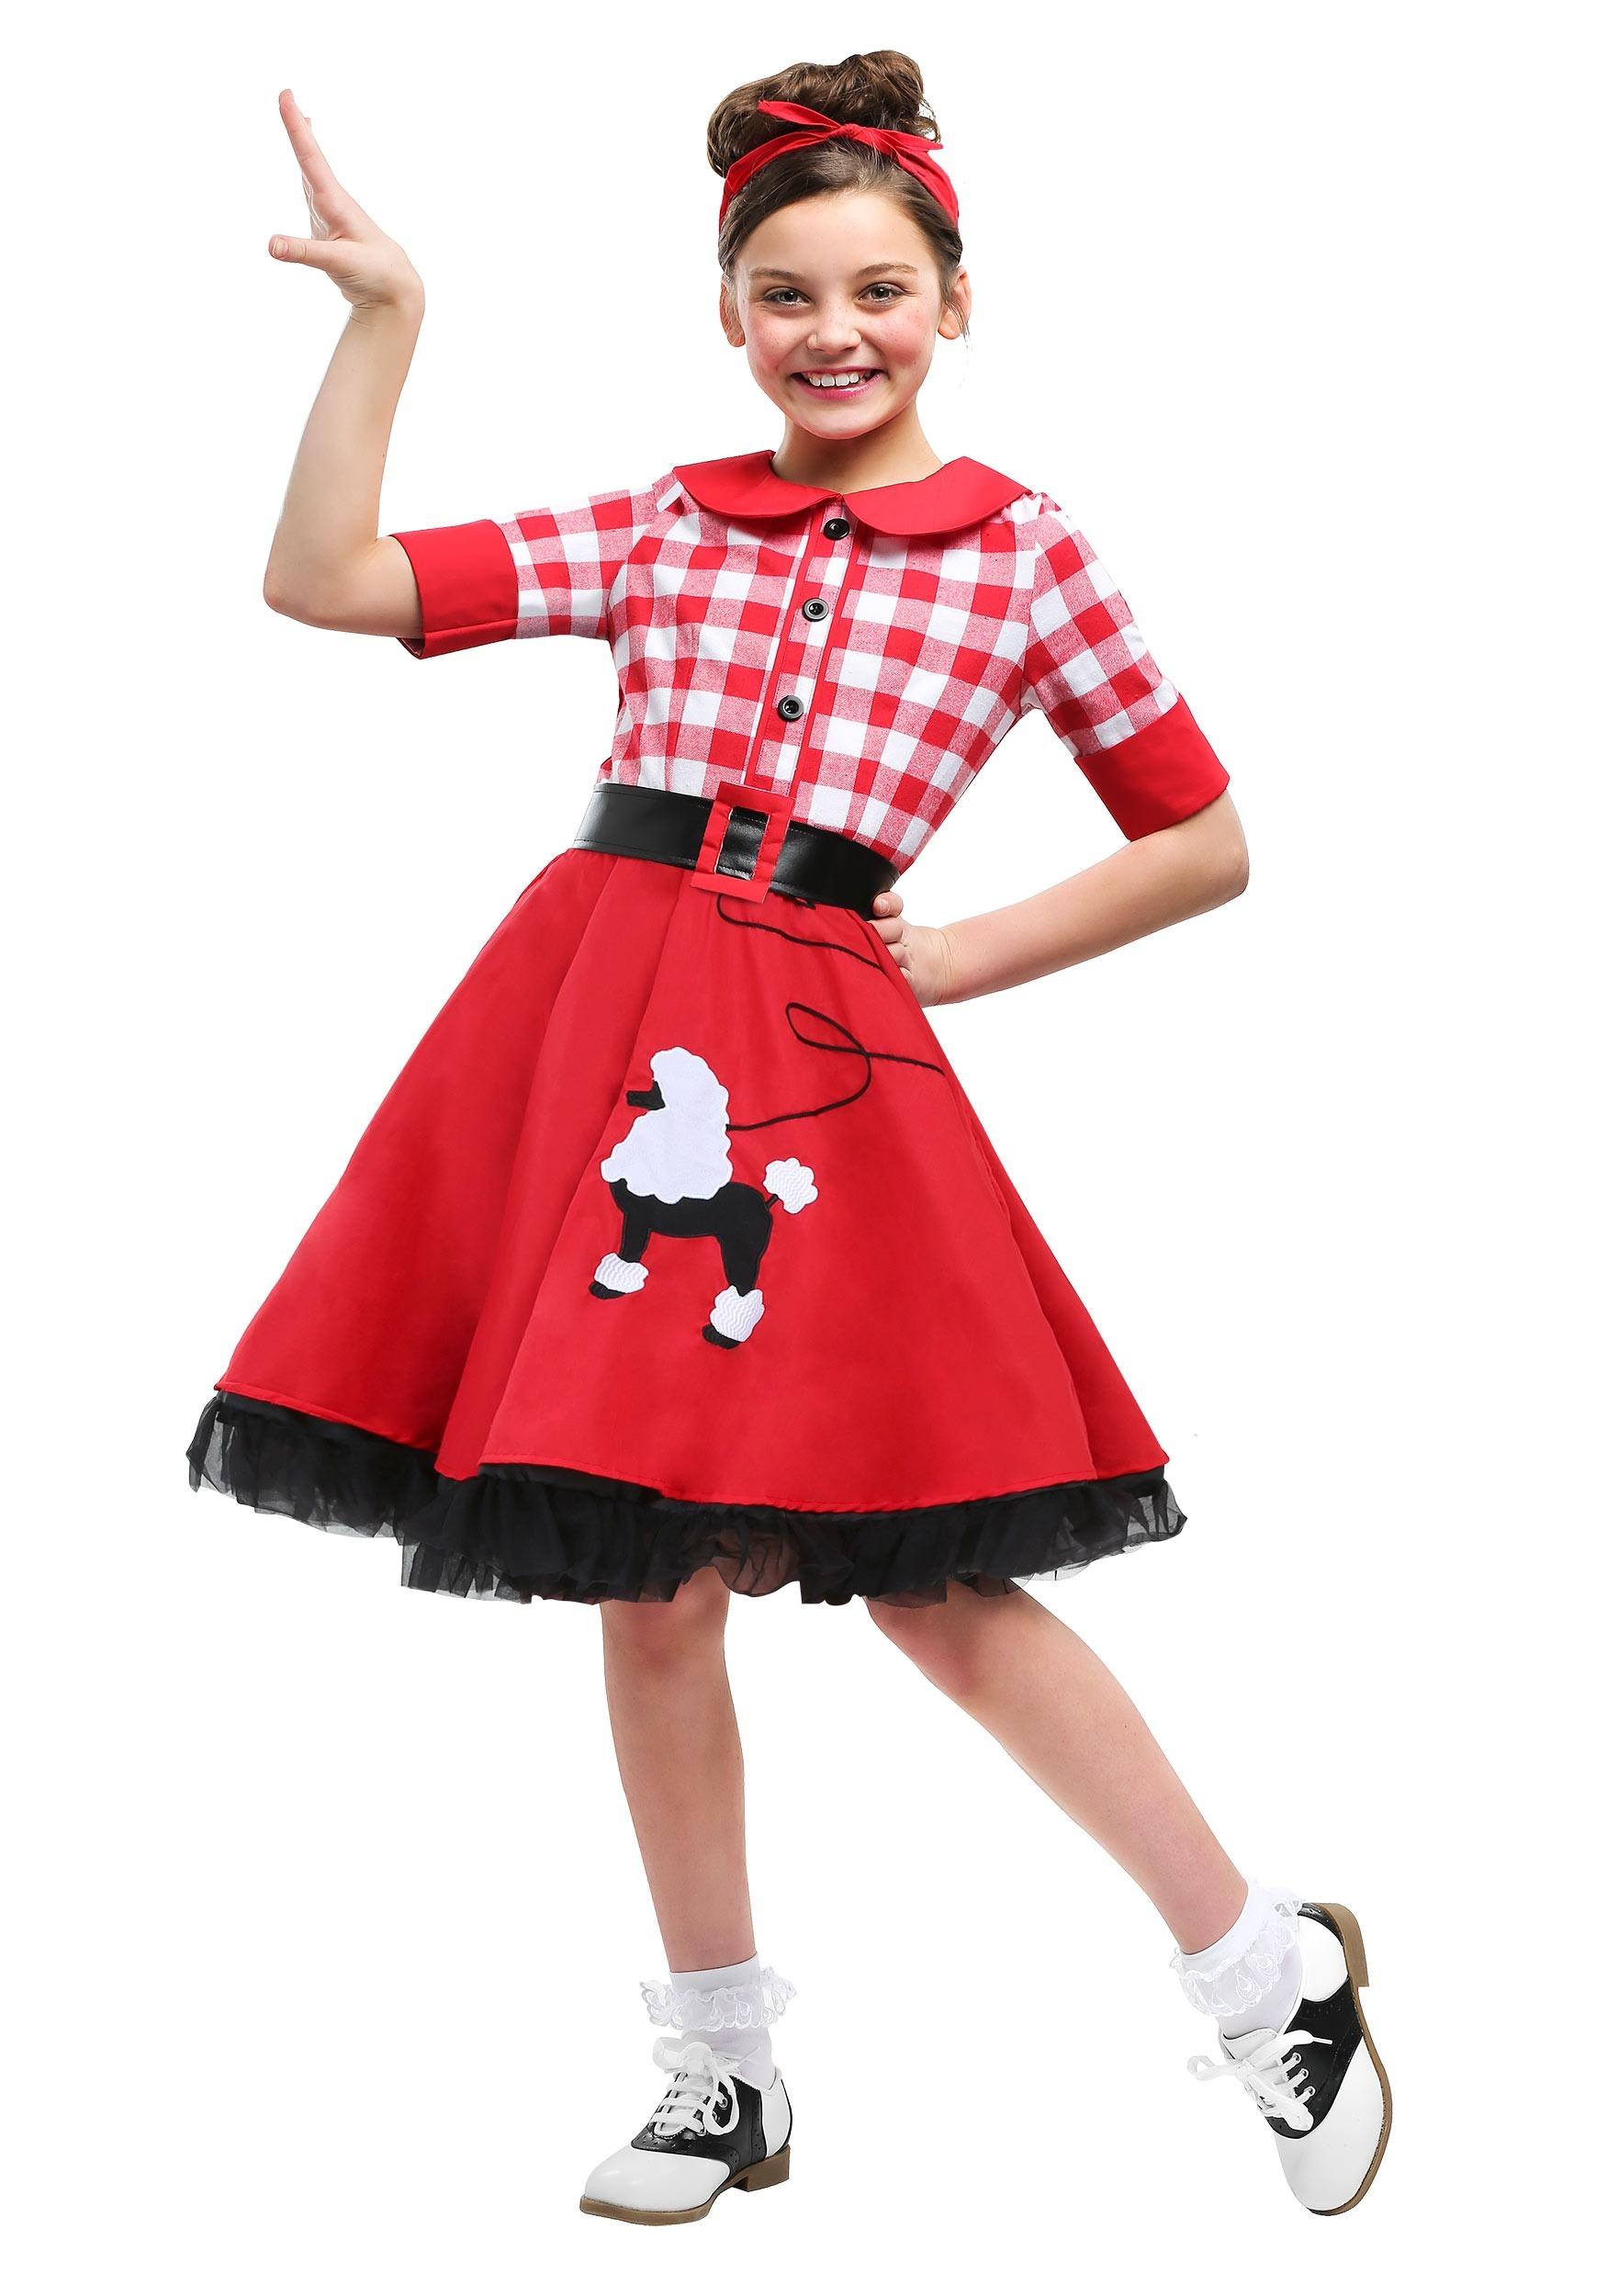 50s Darling Girls Costume 2499 Adult Pink Poodle Skirt